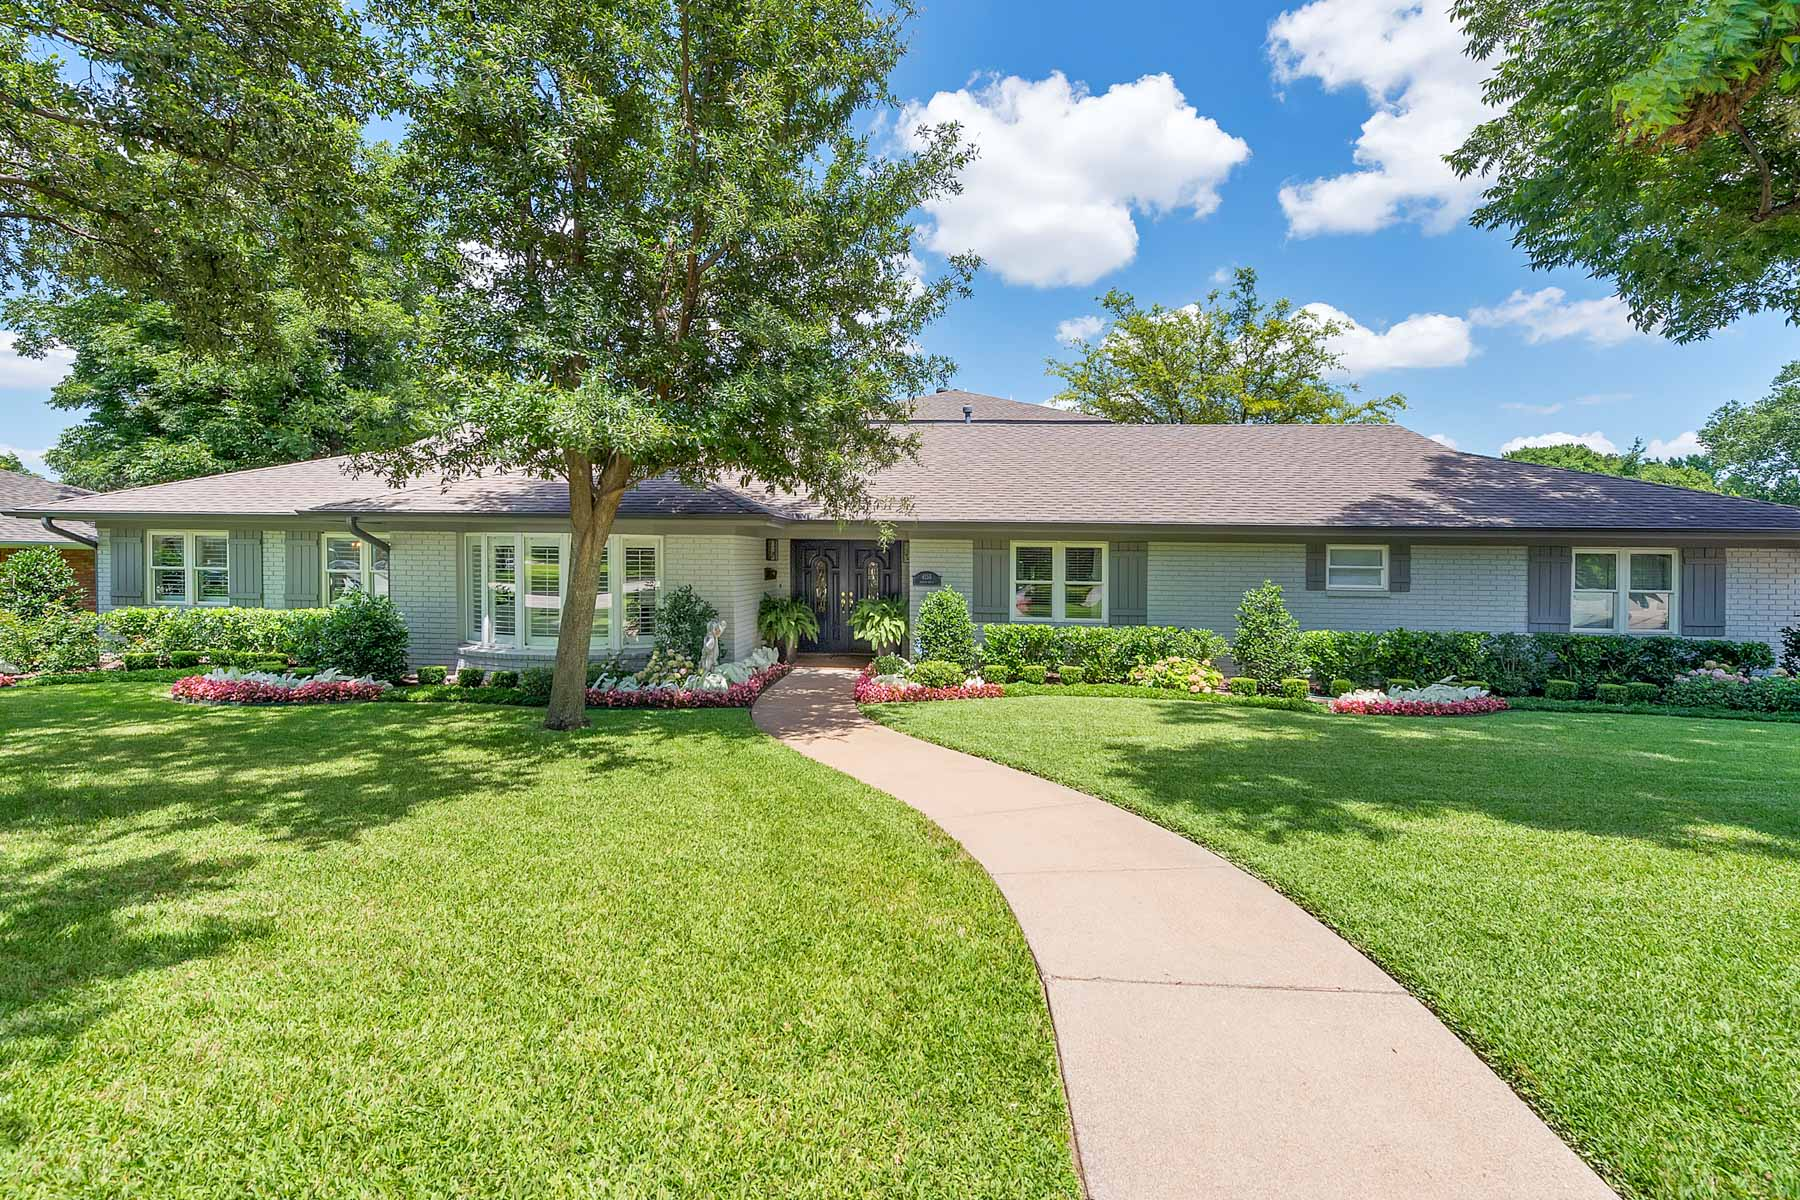 Single Family Home for Sale at Westcliff, Traditional, Ranch 4155 Sarita Drive Fort Worth, Texas, 76109 United States